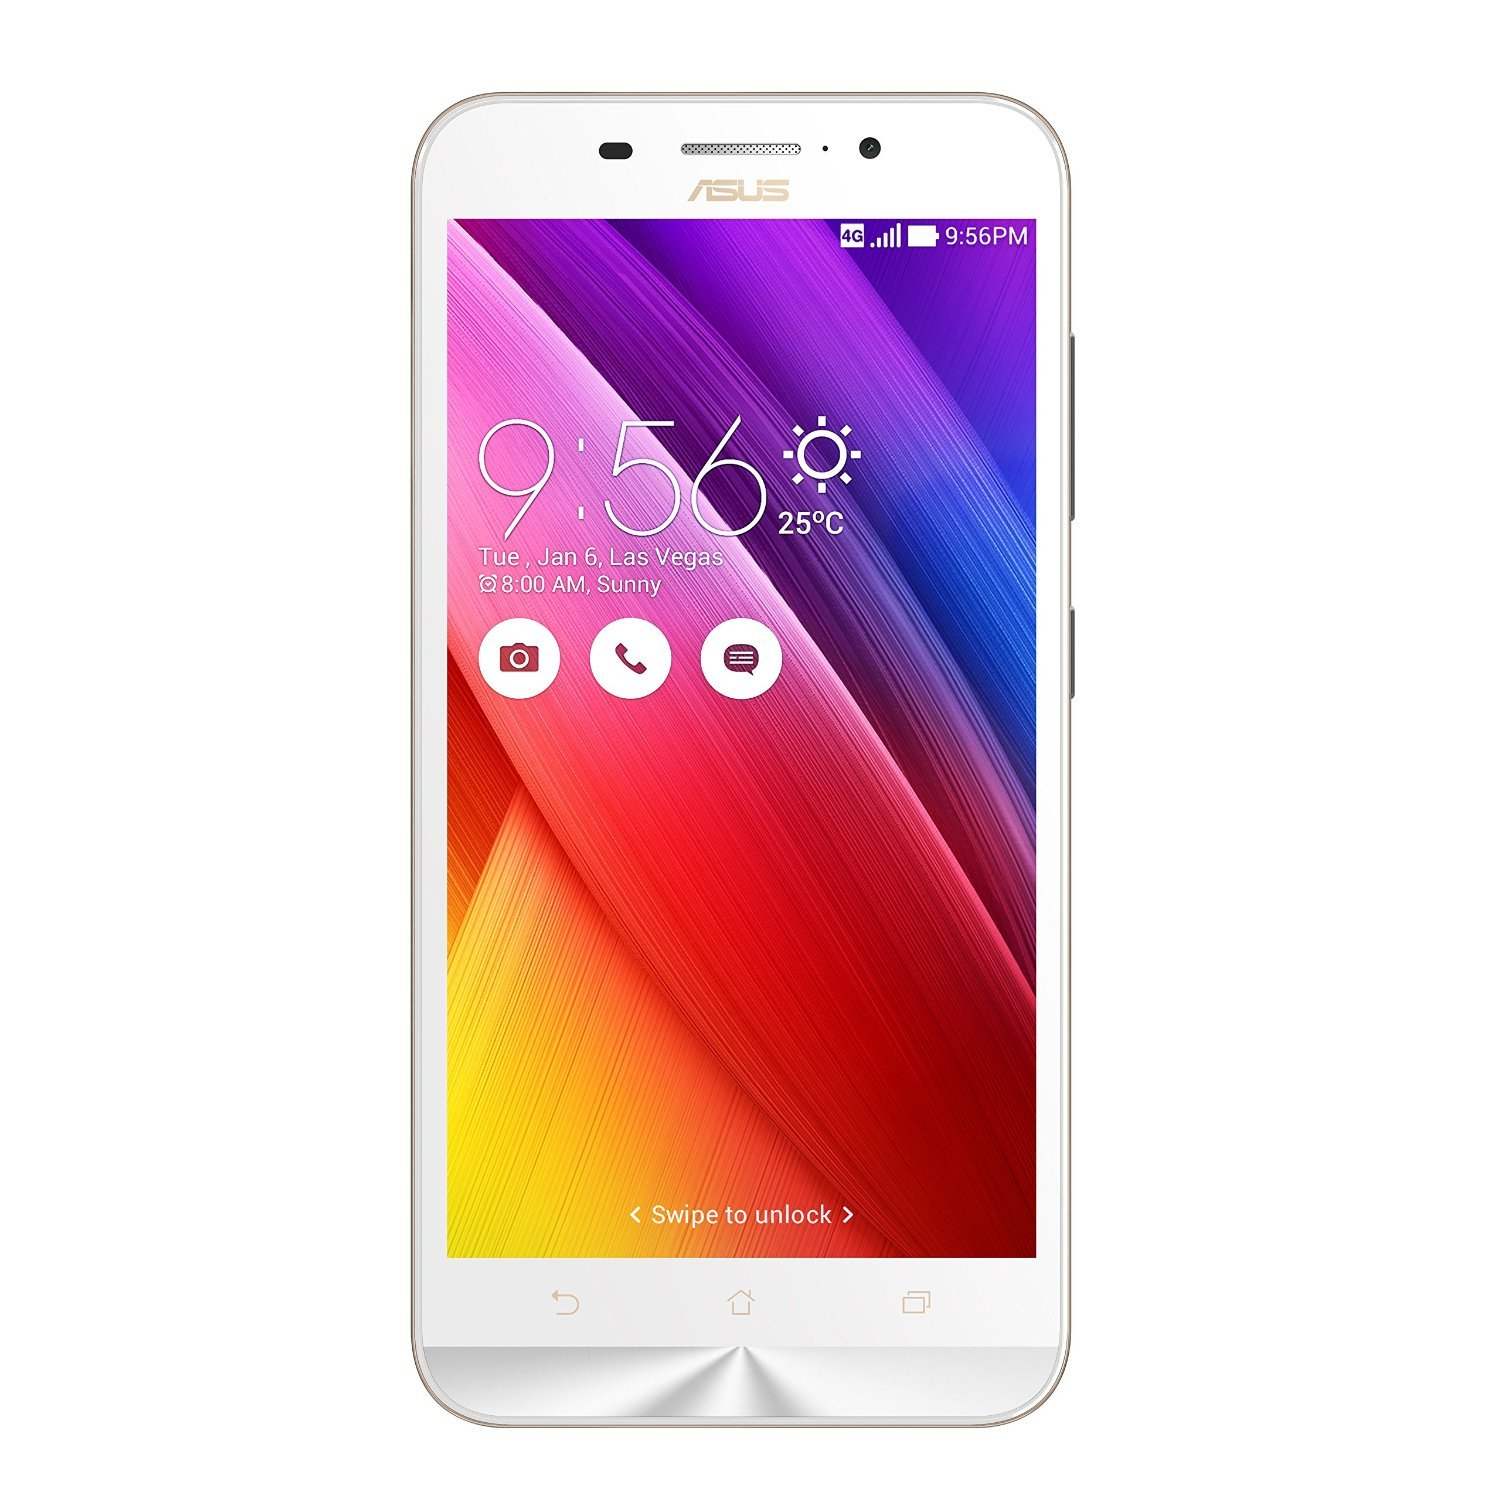 Certified Refurbished Mobiles By Amazon | Asus Zenfone Max ZC550KL (White, 16GB) (Certified Refurbished) @ Rs.7,199